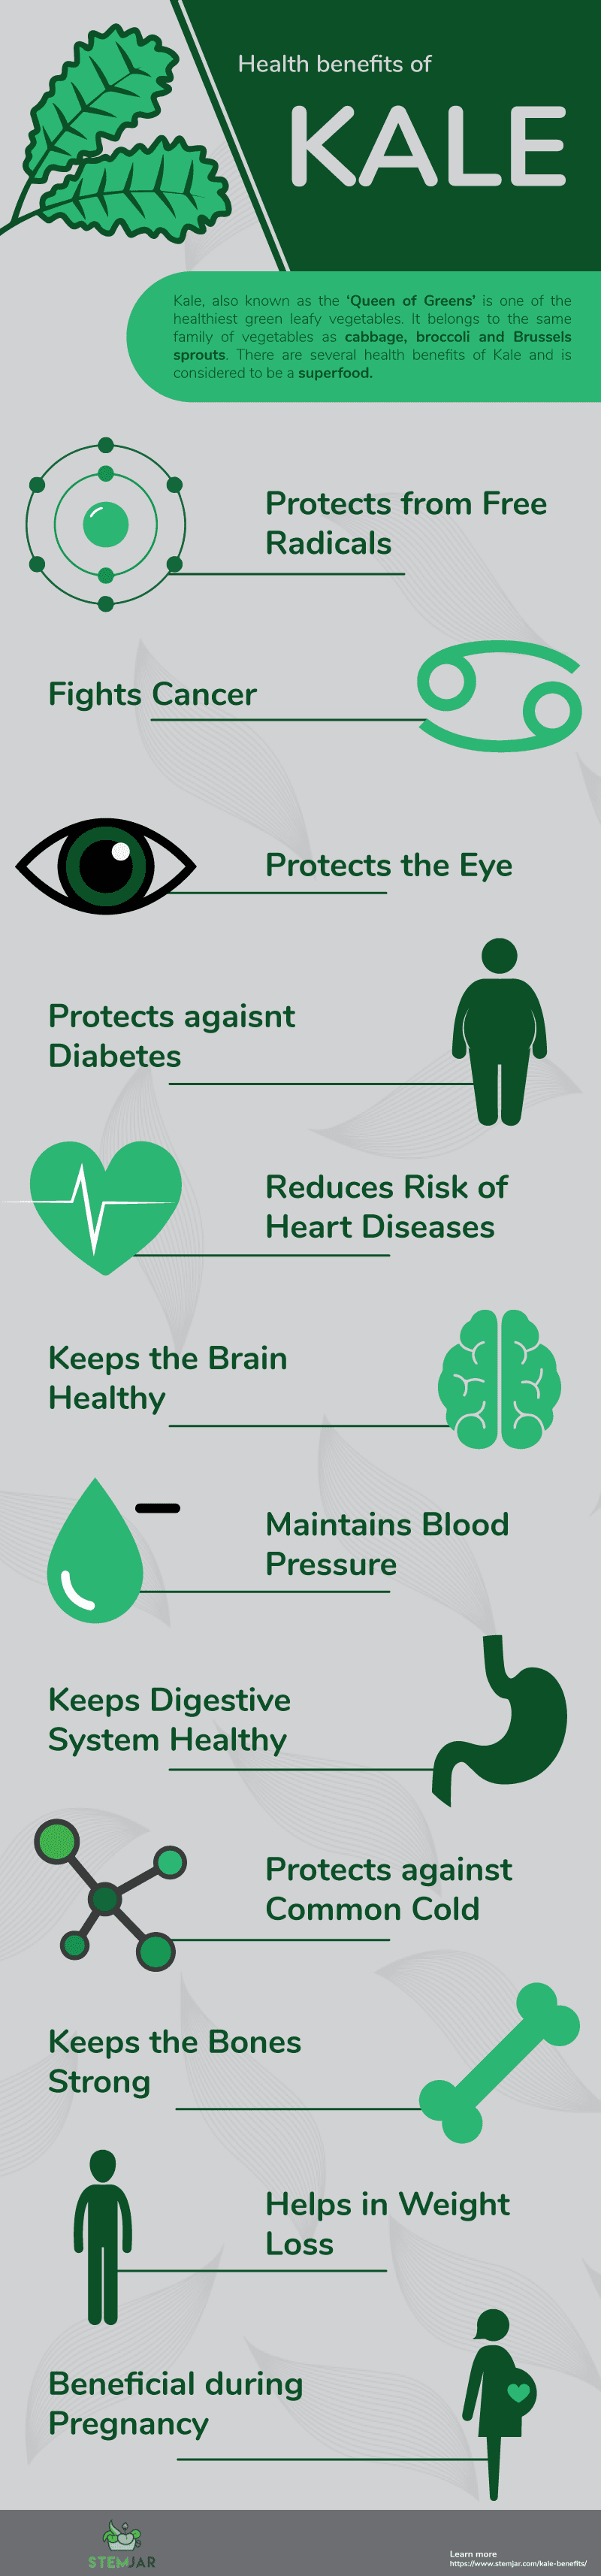 kale benefits info graphic